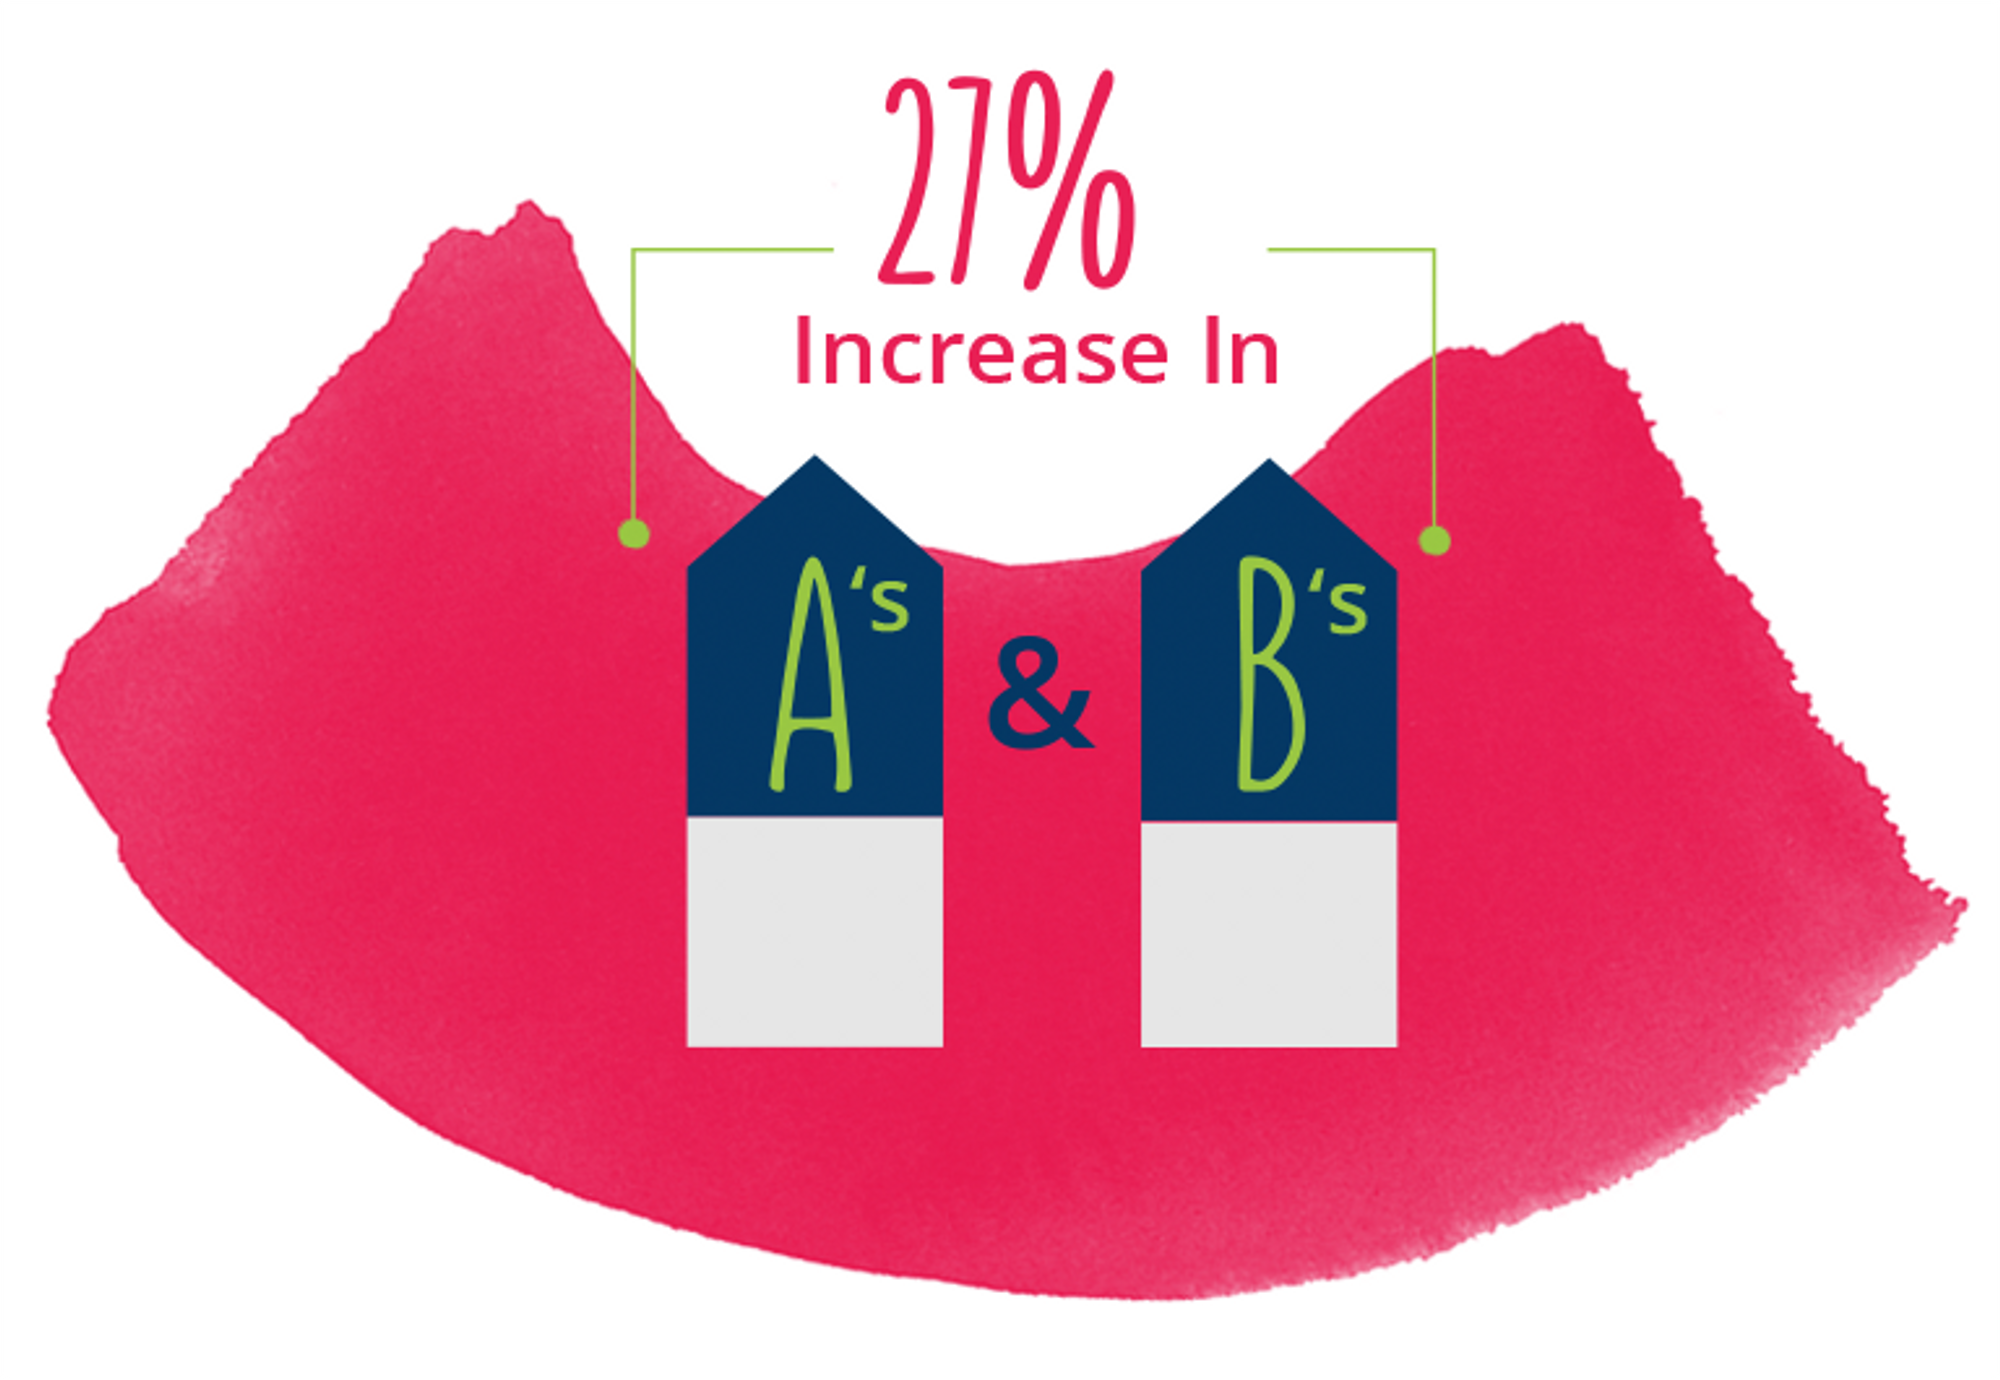 20% Increase in A's & B's